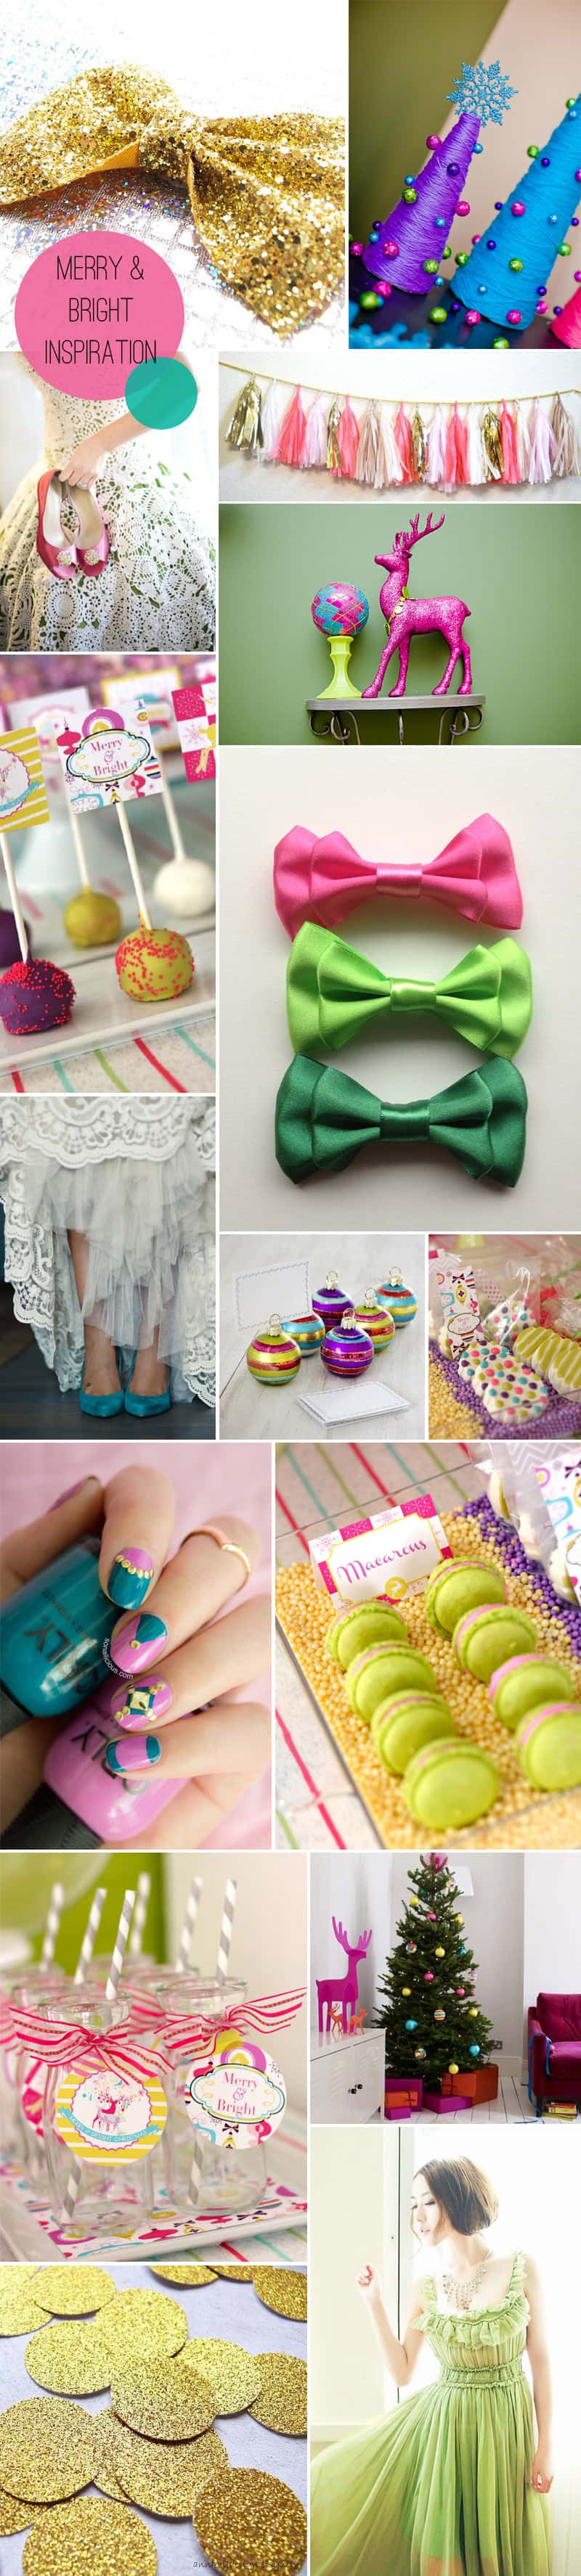 Merry and Bright Christmas Inspiration Board